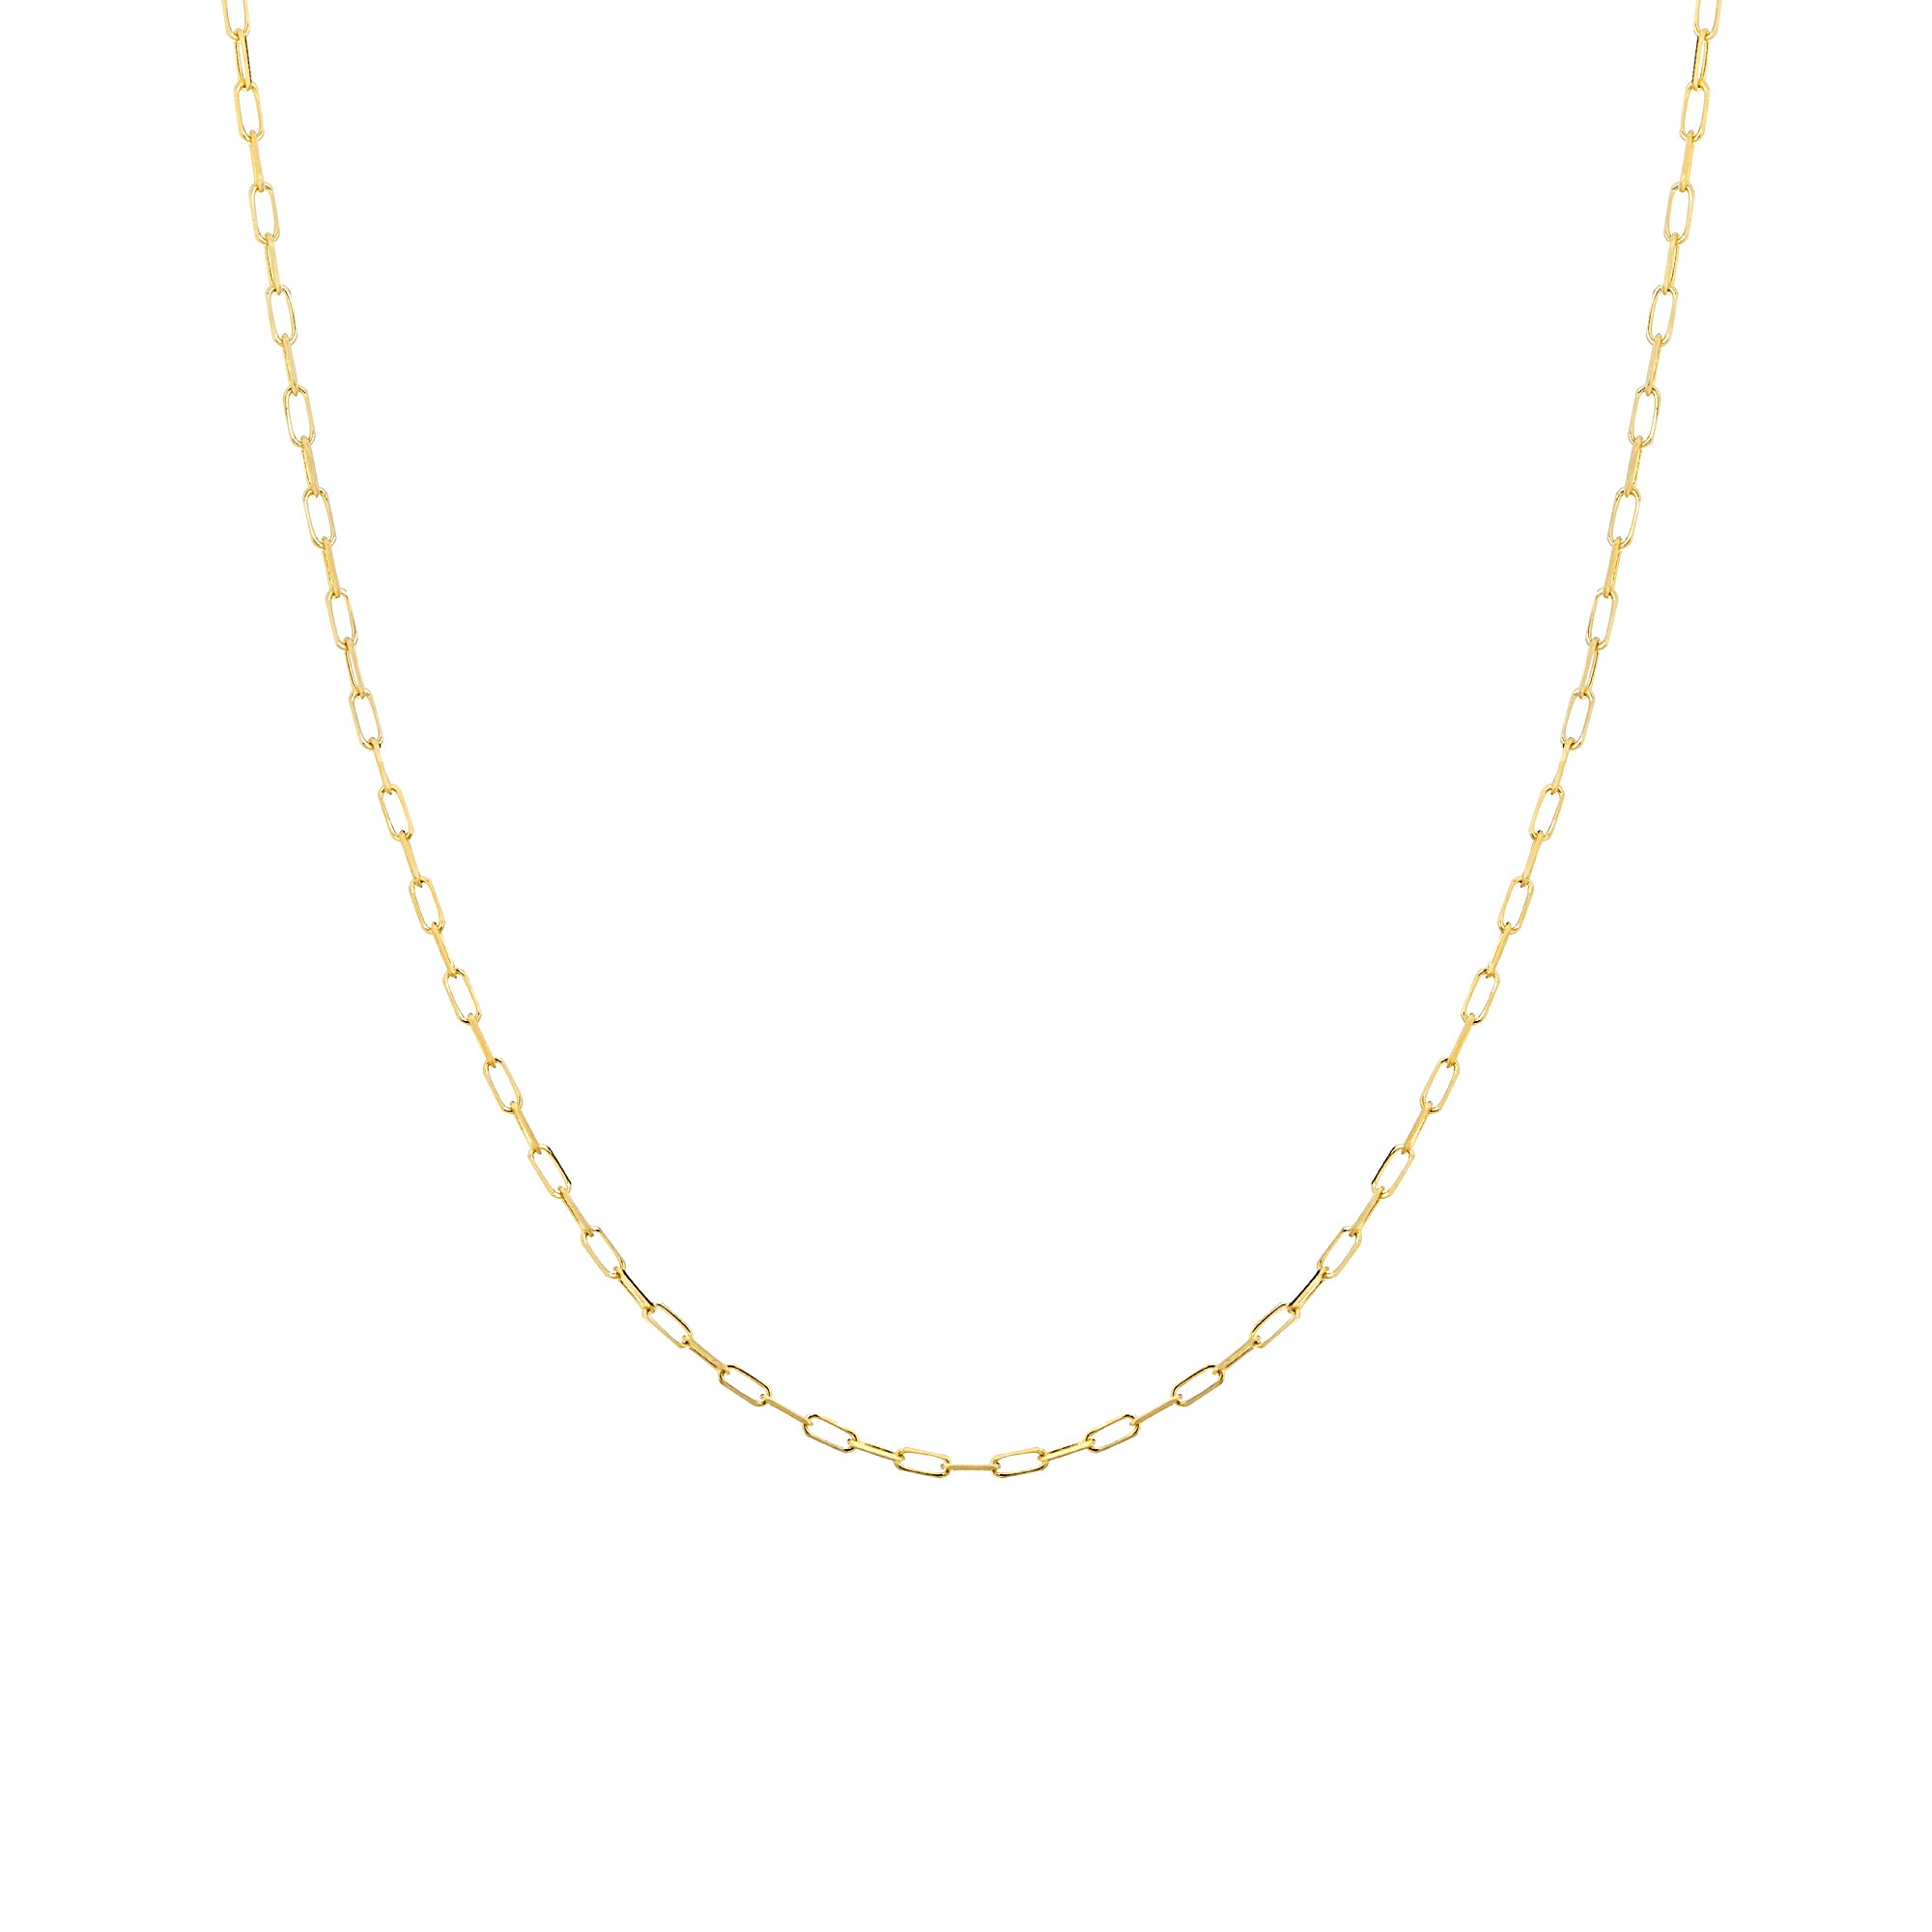 products necklace chains gold chain yellow jewelry twisted rondels row